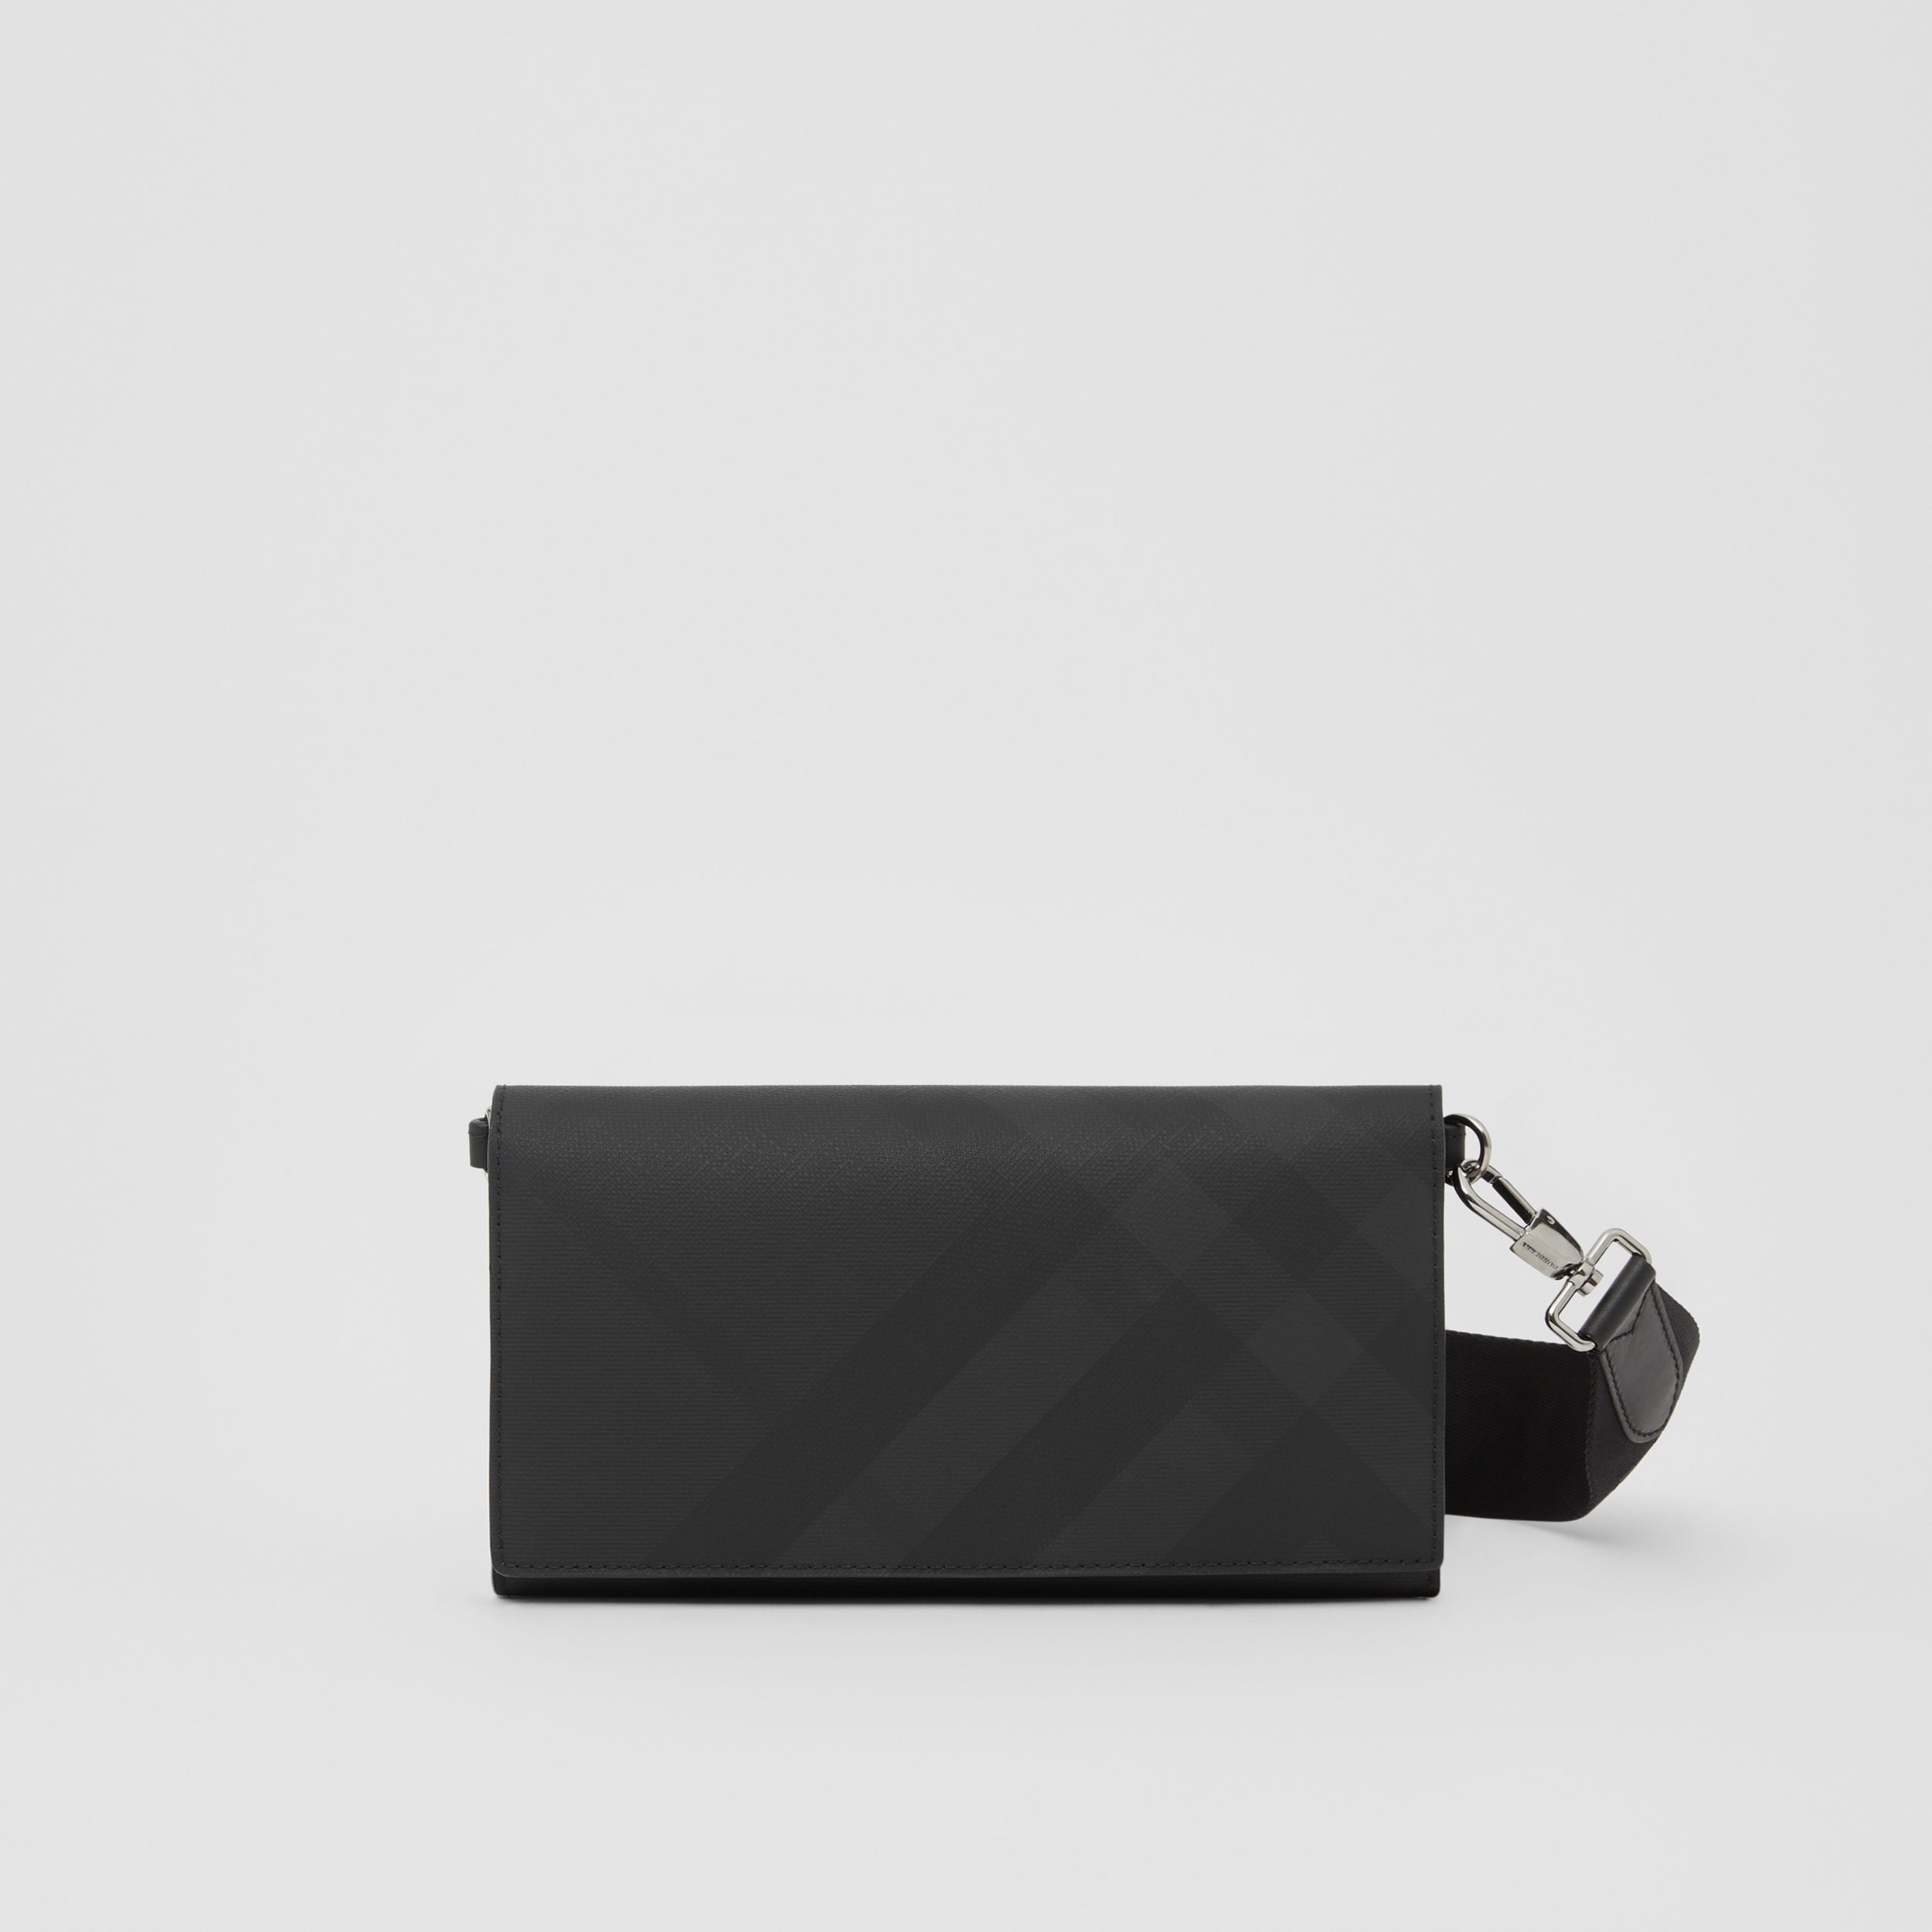 London Check Wallet with Detachable Strap in Dark Charcoal | Burberry Australia - 1